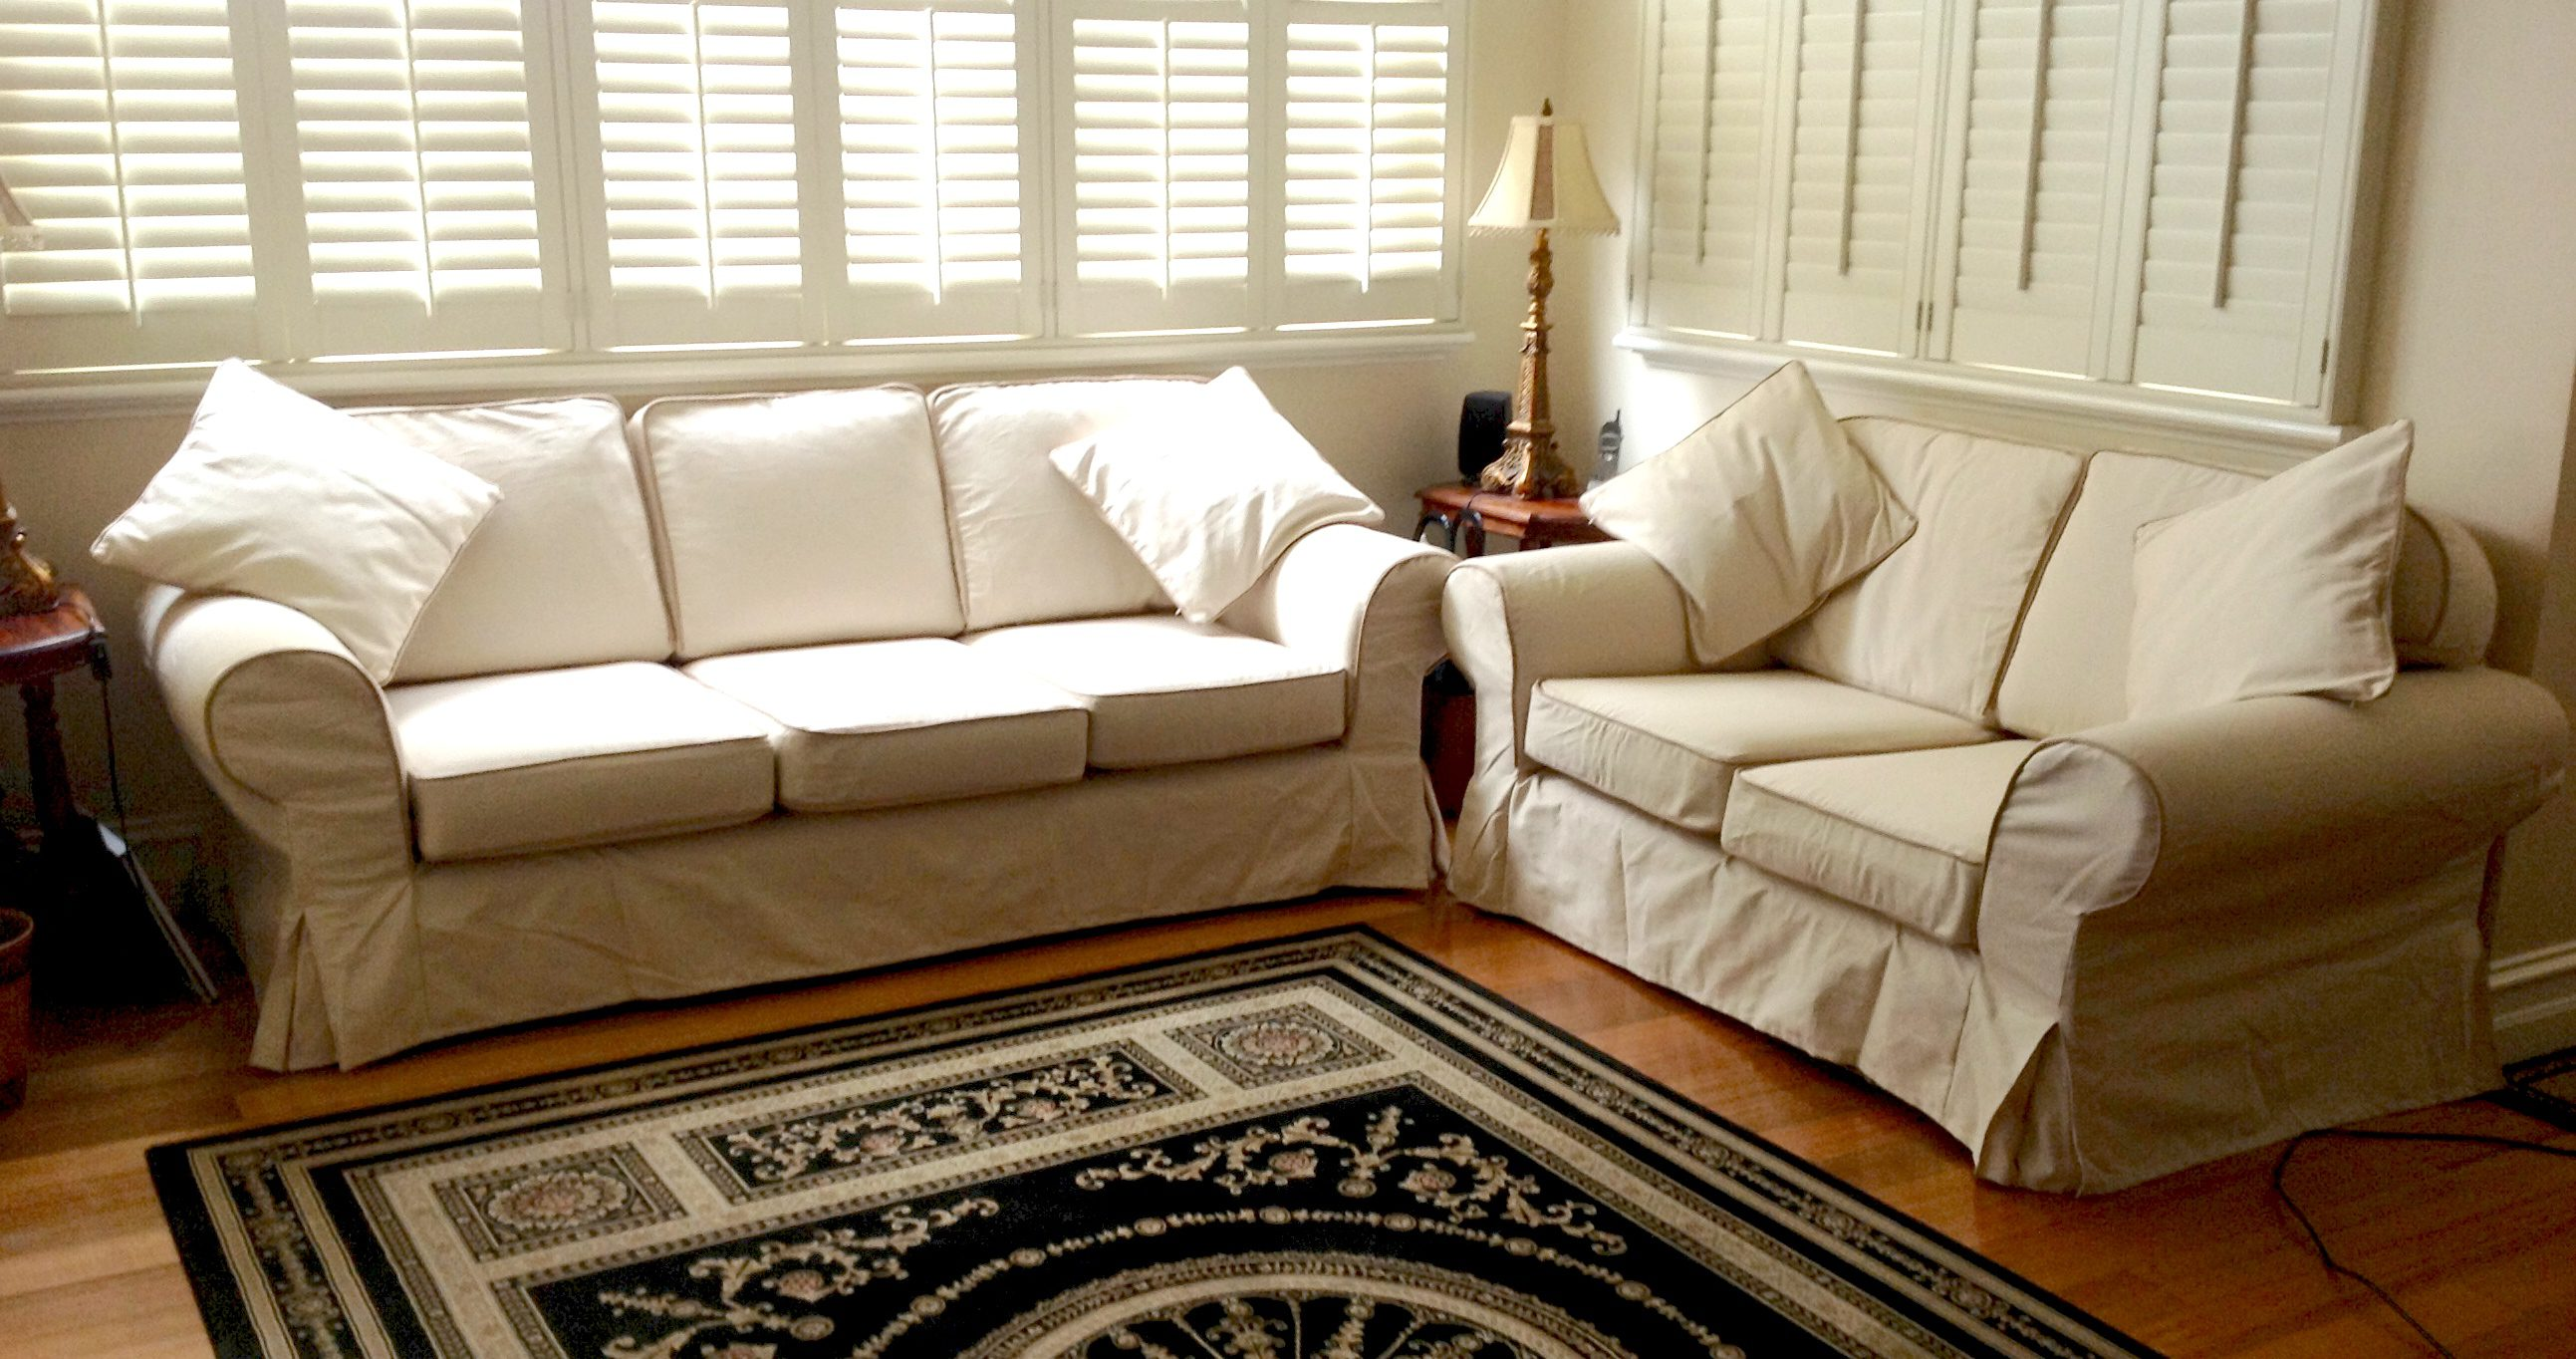 custom slipcovers and couch cover for